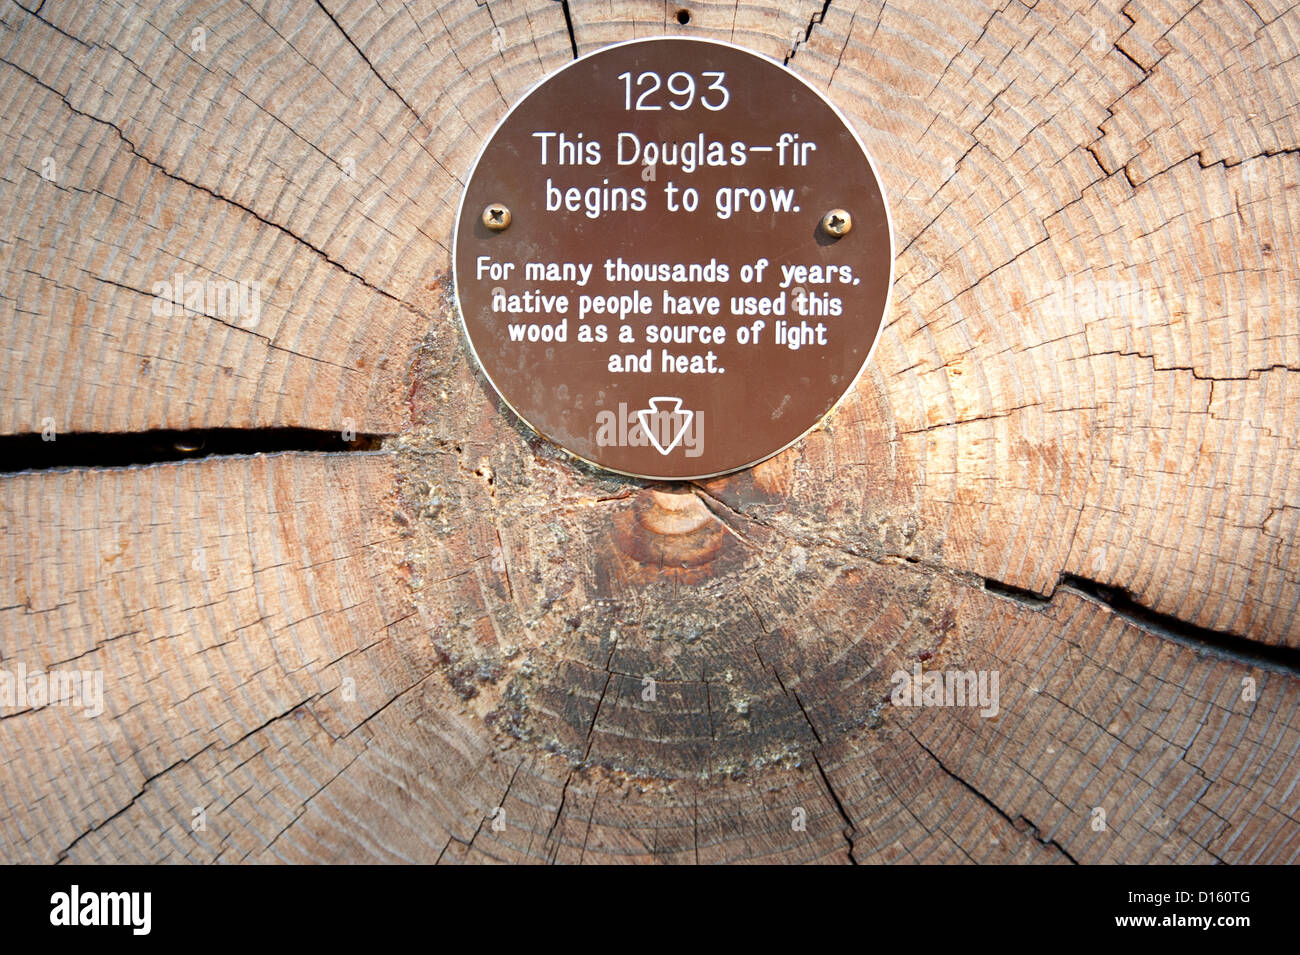 Tree-ring dating on a Douglas-fir. - Stock Image